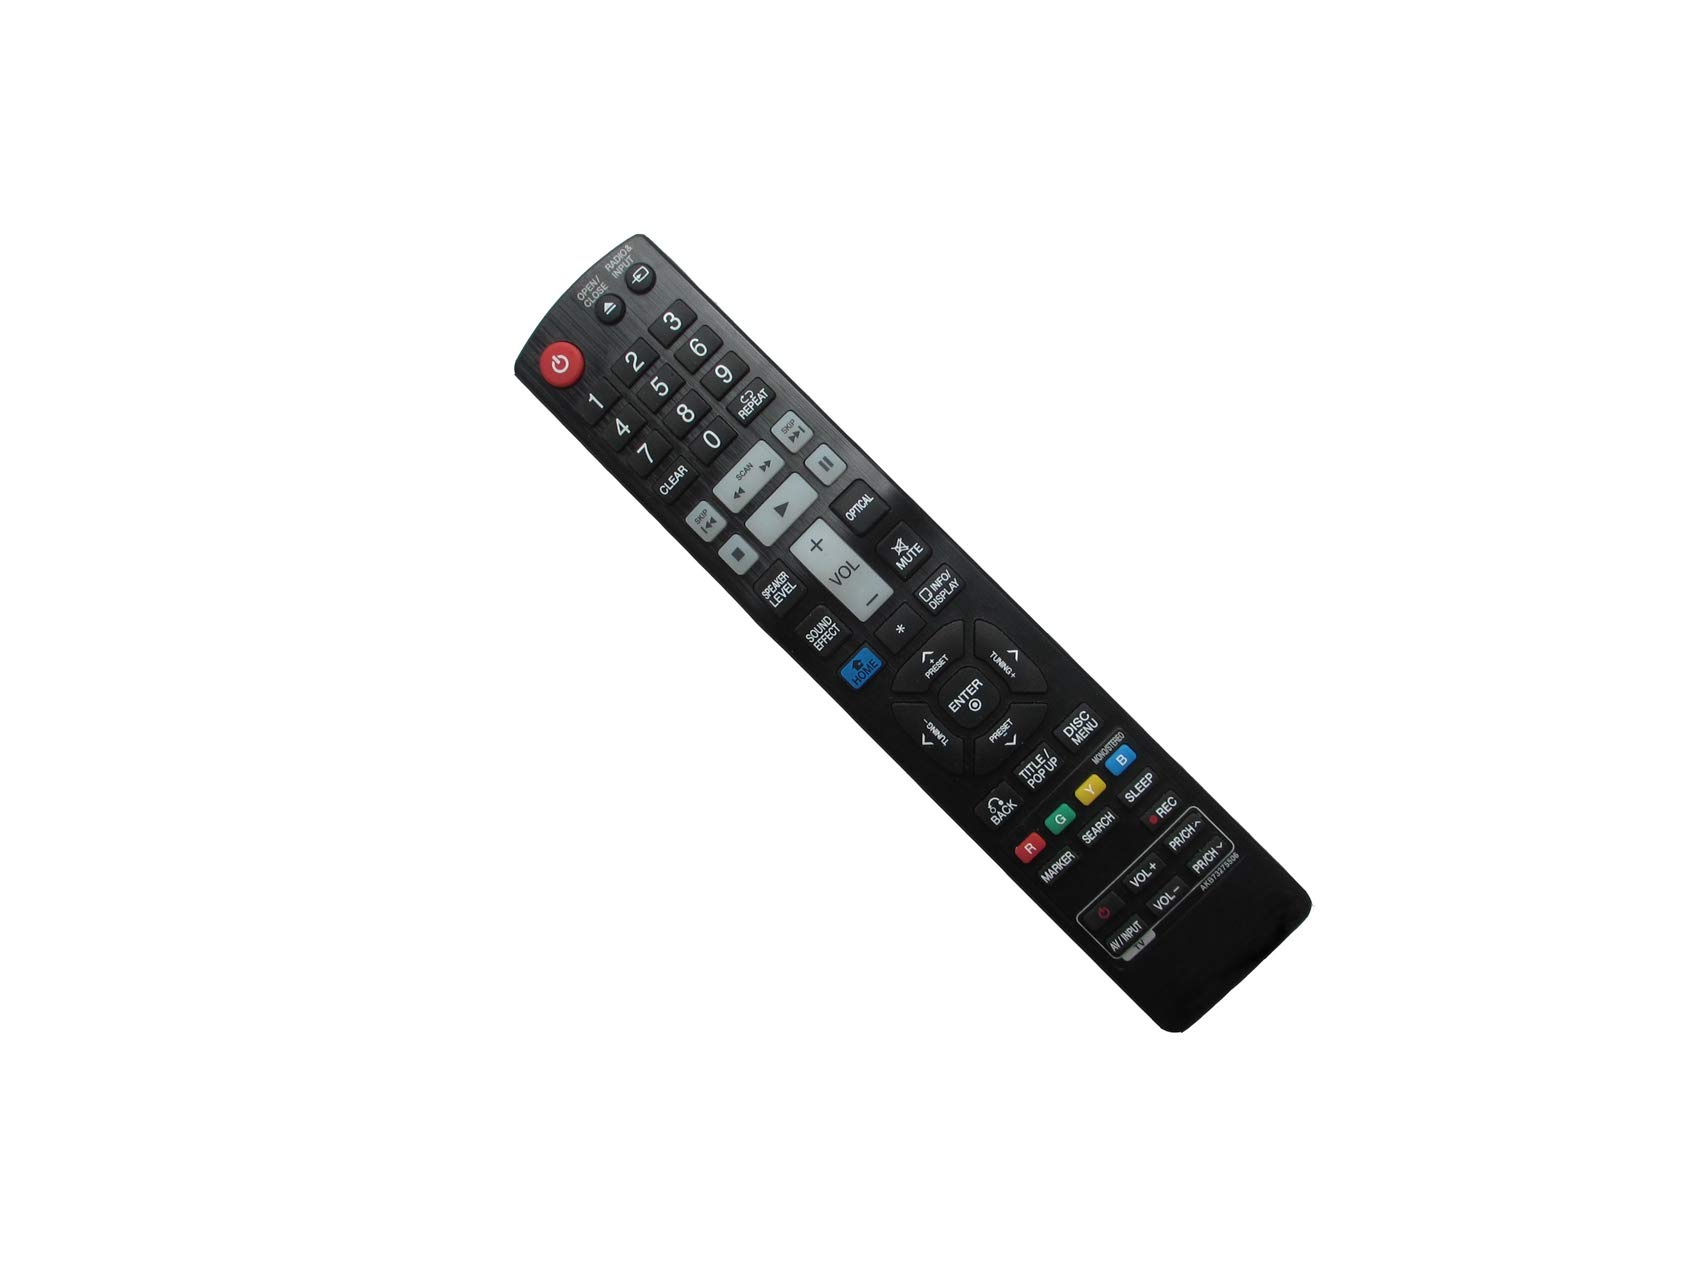 HCDZ Replacement Remote Control for LG AKB69491513 AKB69491503 AKB69491501 AKB73775801 BD Blu-ray Home Theater System